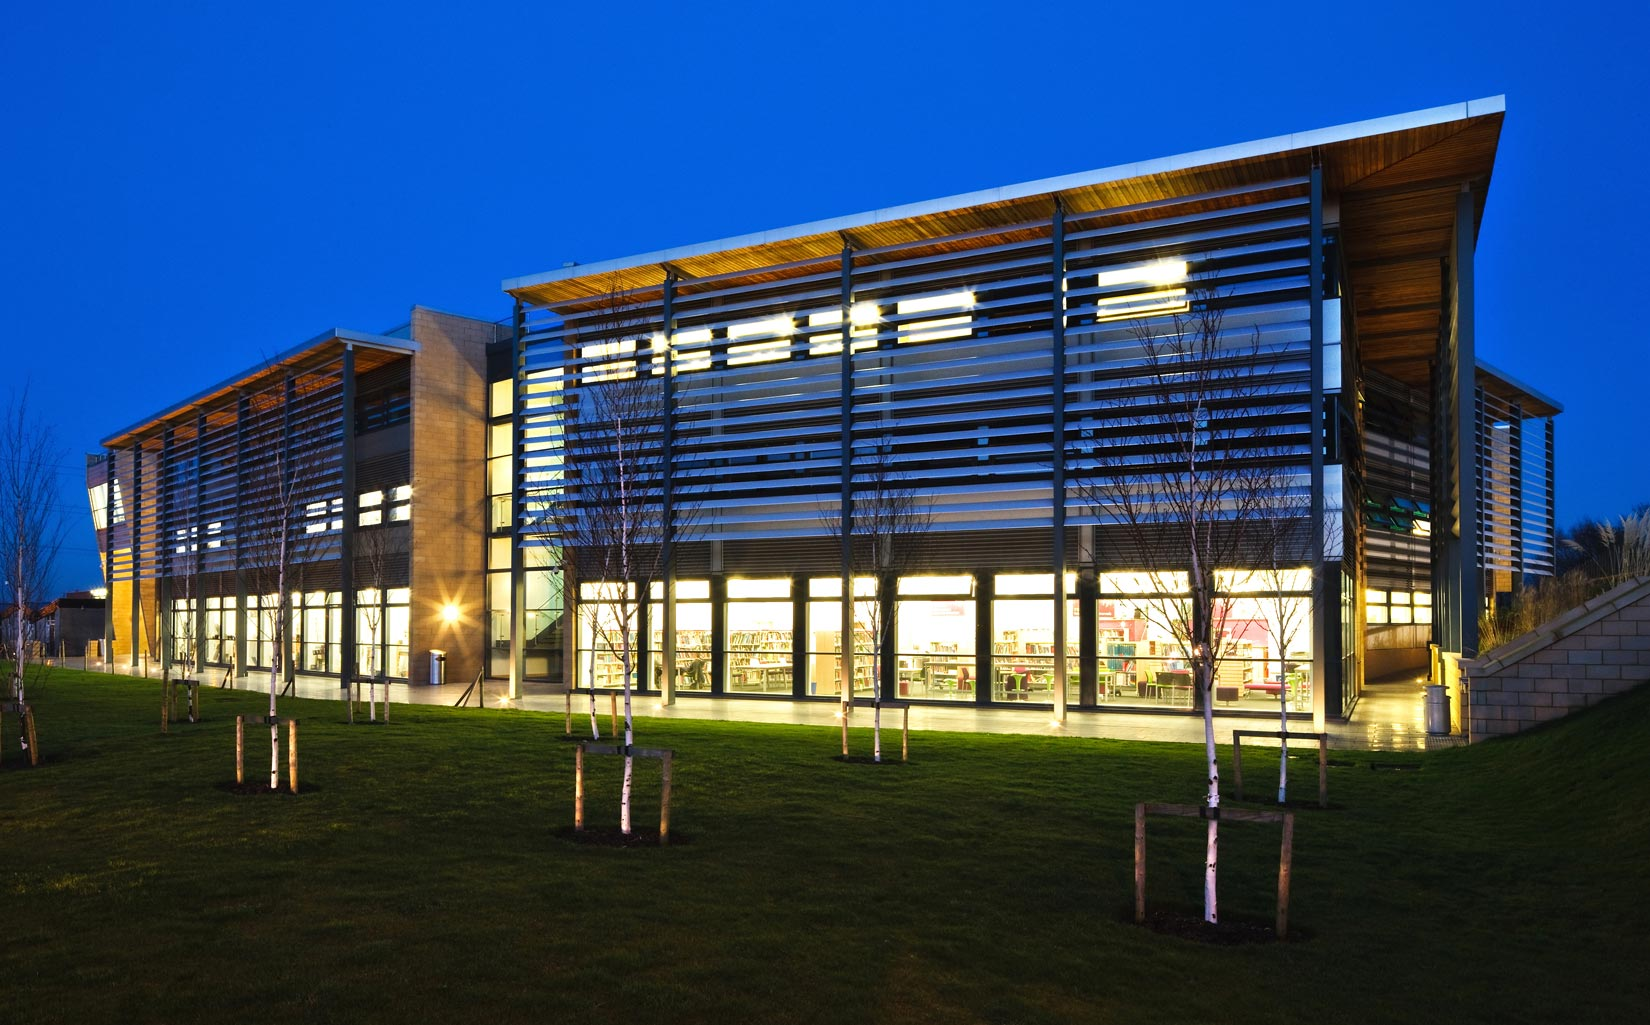 ackpool Sixth Form College, night time